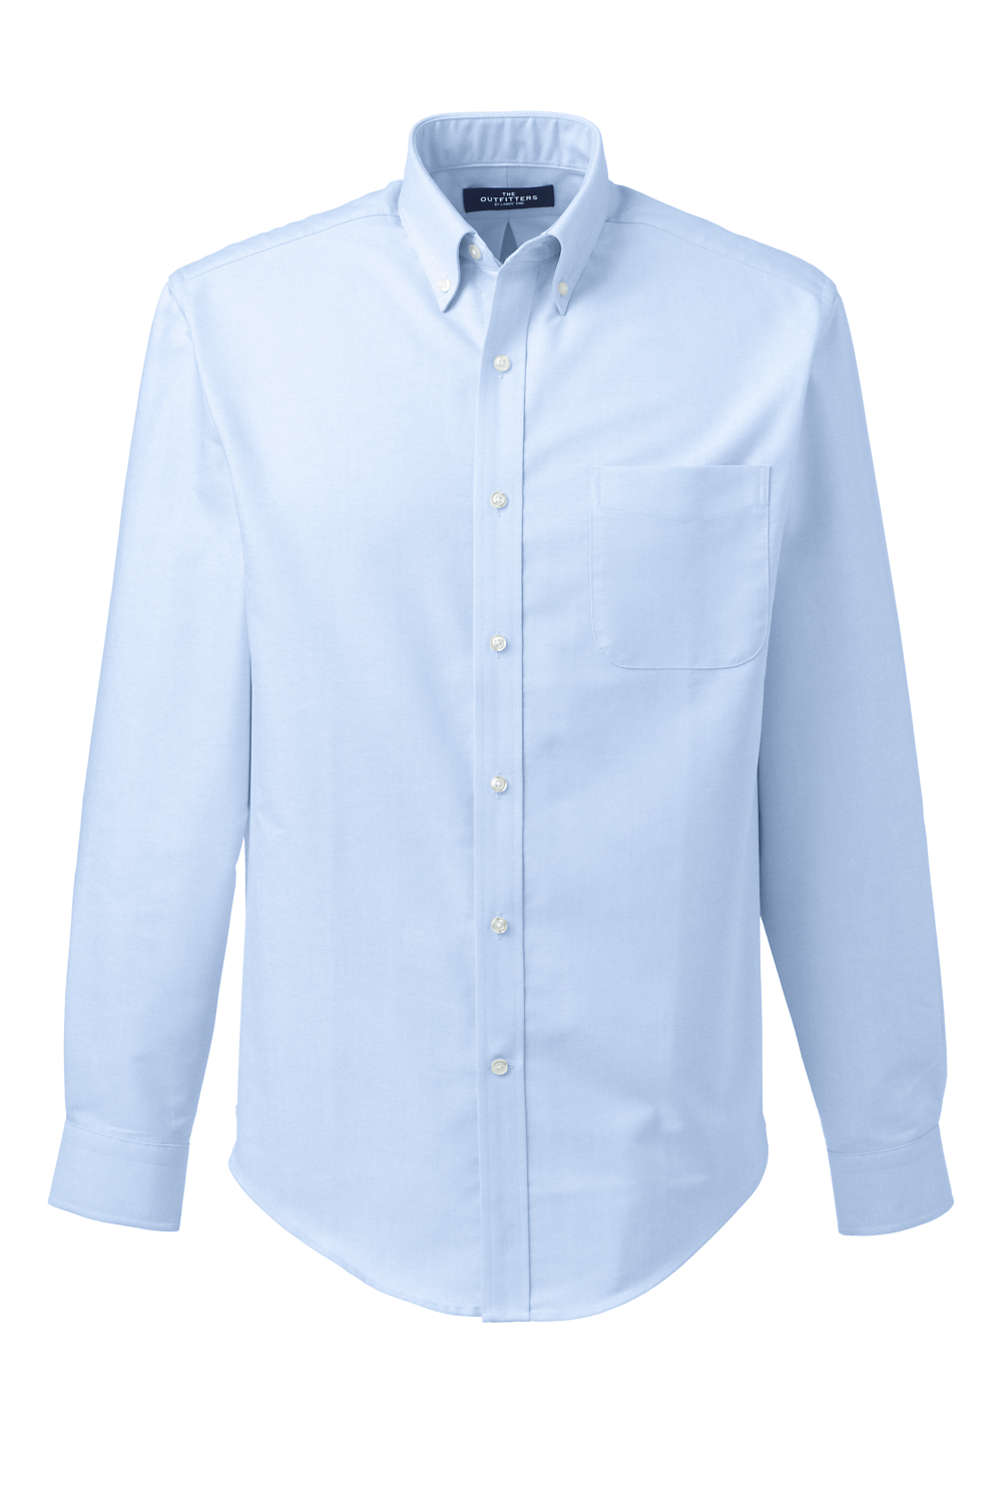 School Uniform Mens Tailored Fit Long Sleeve Buttondown Oxford